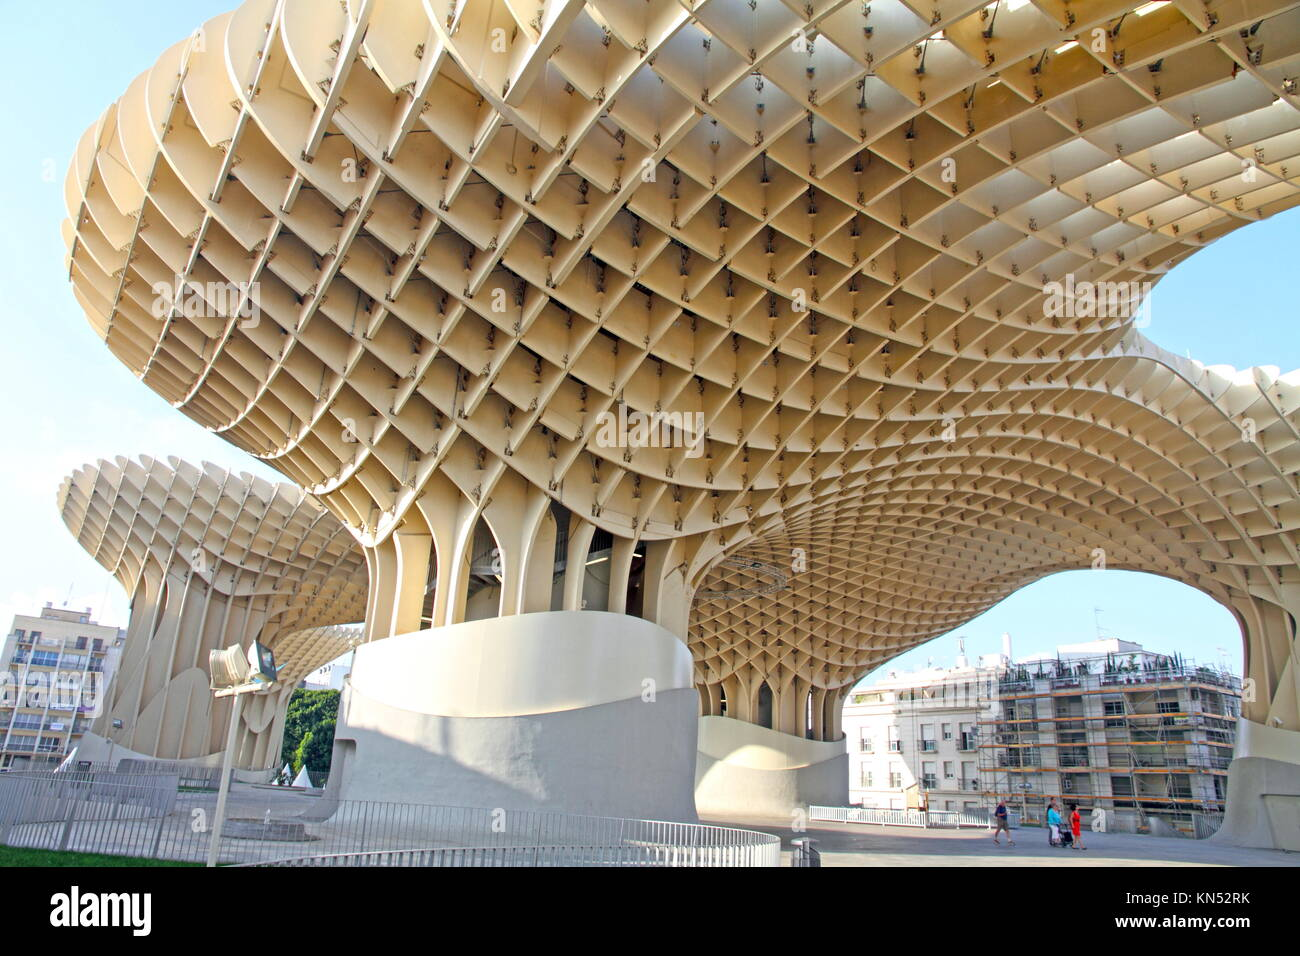 sevilla spanien metropol parasol in sevilla spanien von j rgen mayer h architekten ist der. Black Bedroom Furniture Sets. Home Design Ideas